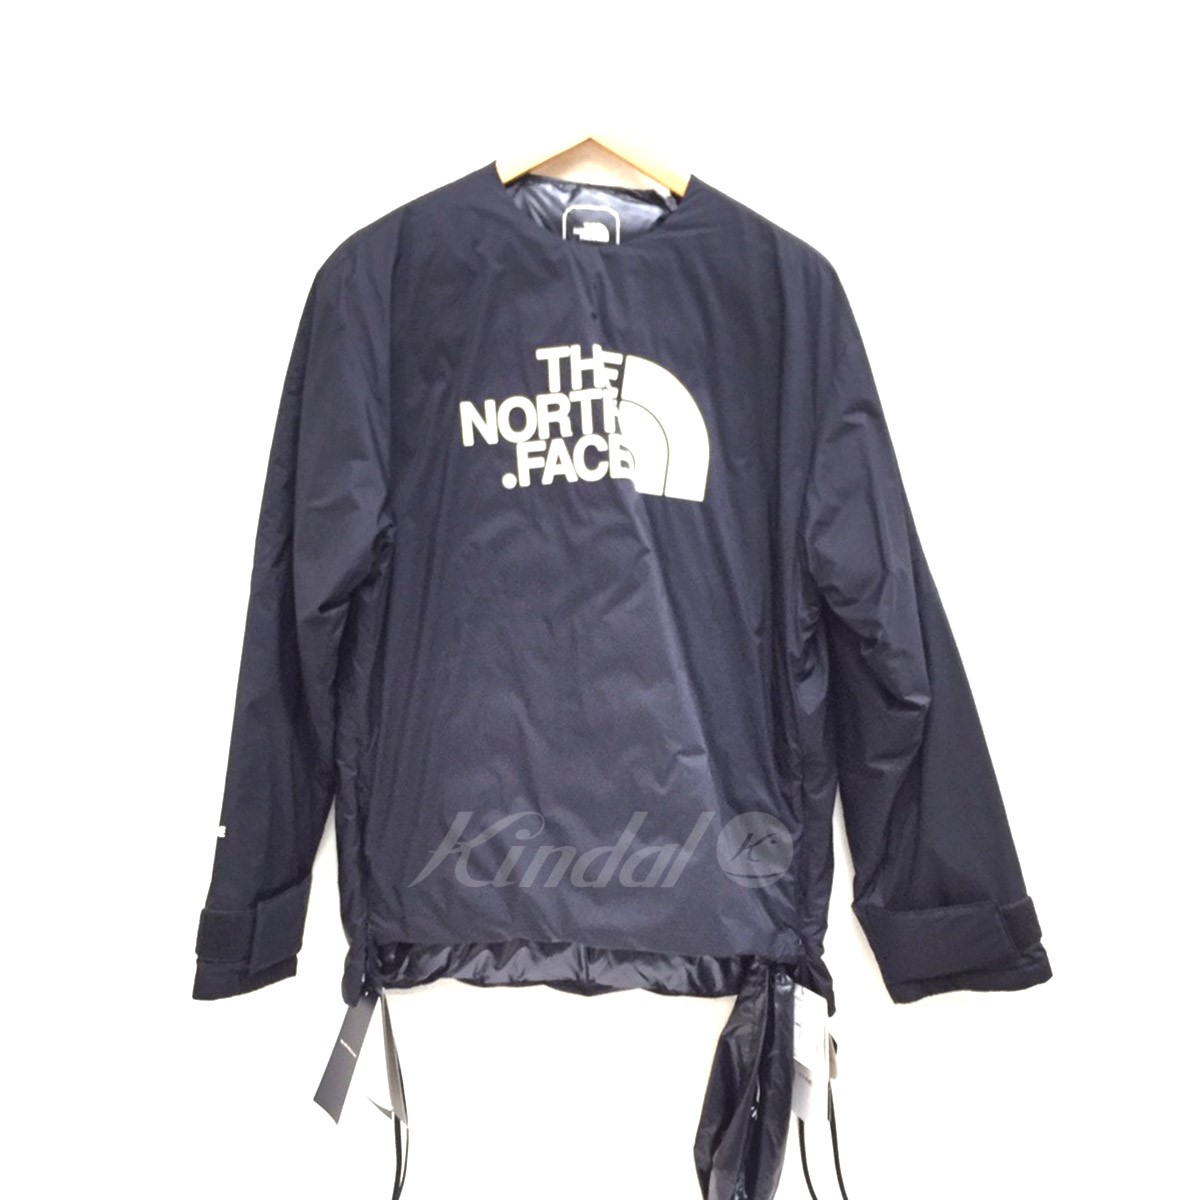 【中古】HYKE×THE NORTH FACE Light Down Top ライトダウントップ 2018AW 【送料無料】 【137369】 【KIND1551】